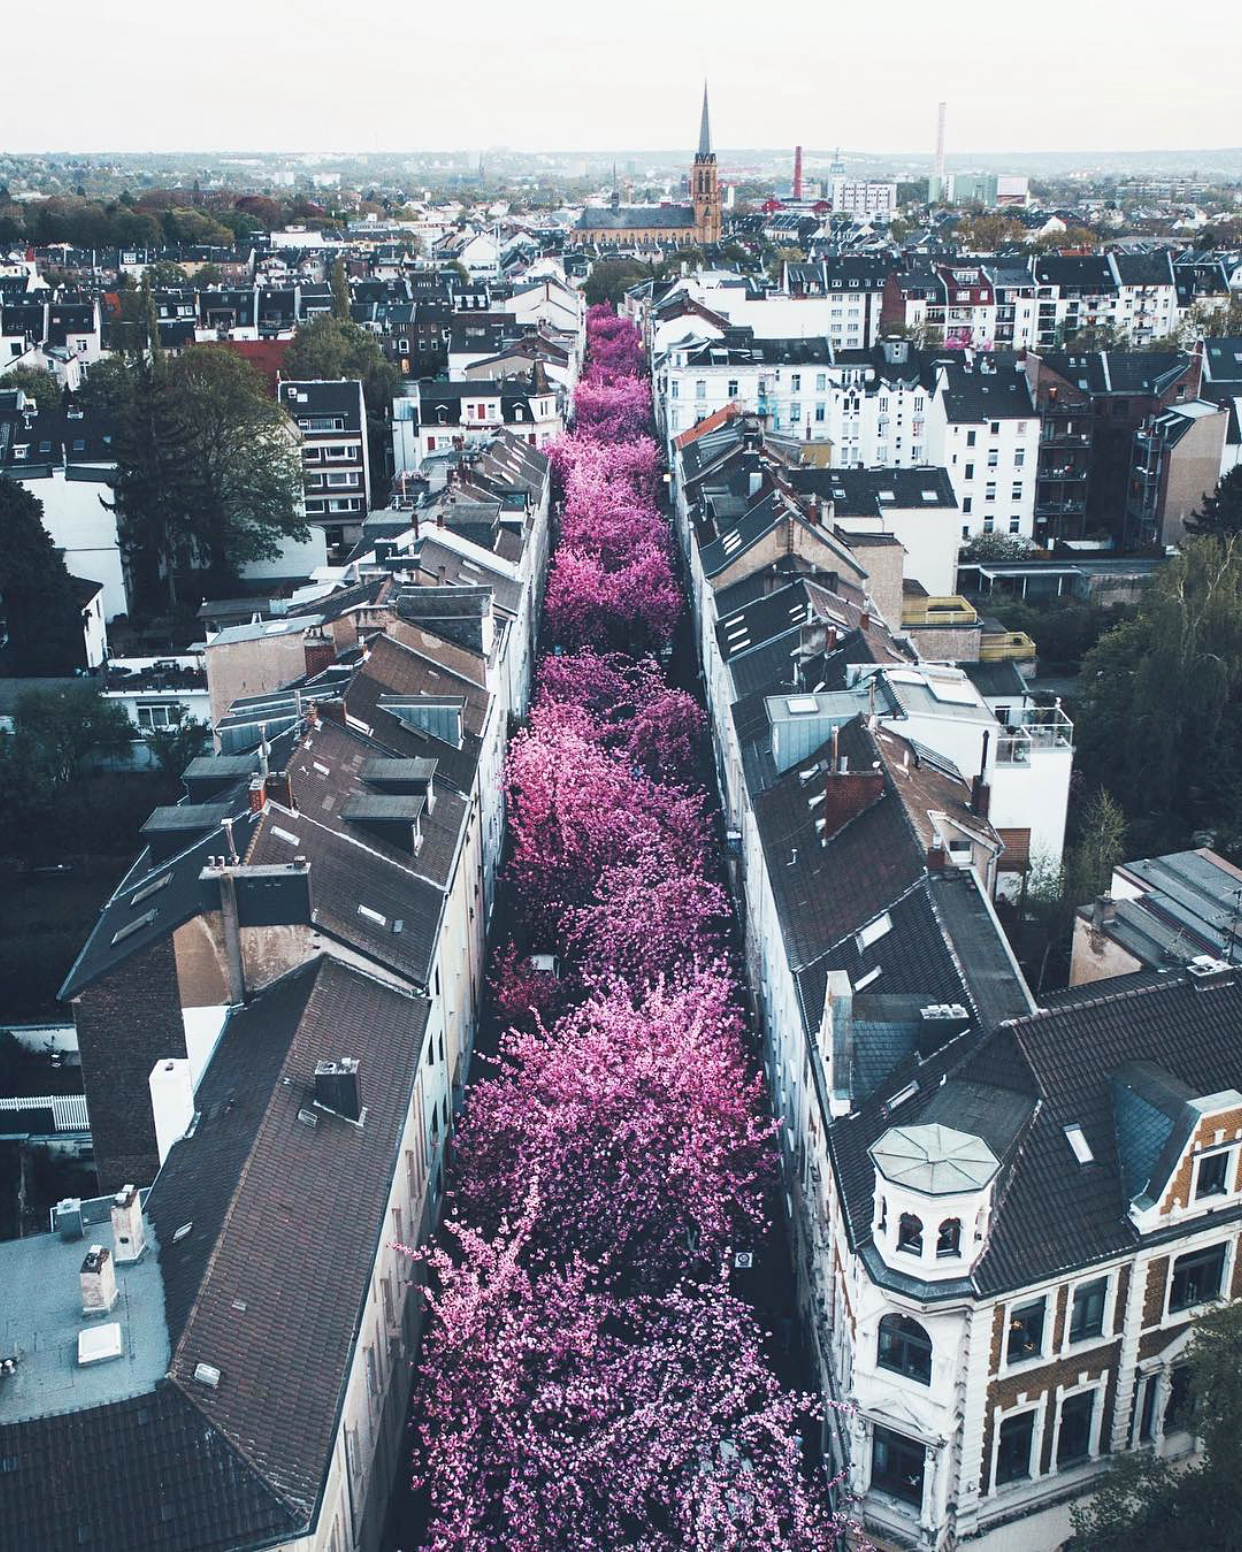 """Check out this beautiful image of """"Cherry Blossom Avenue"""" in Bonn, Germany. Every spring, this street — officially known as Heerstraße — is transformed into a bright pink tunnel as ornamental Japanese Cherry Blossoms bloom. The trees were planted in the 1980s and attract thousands of tourists every season.  50°44'20.3""""N, 7°05'30.6""""E  Source imagery: Lennart Pagel Photography"""